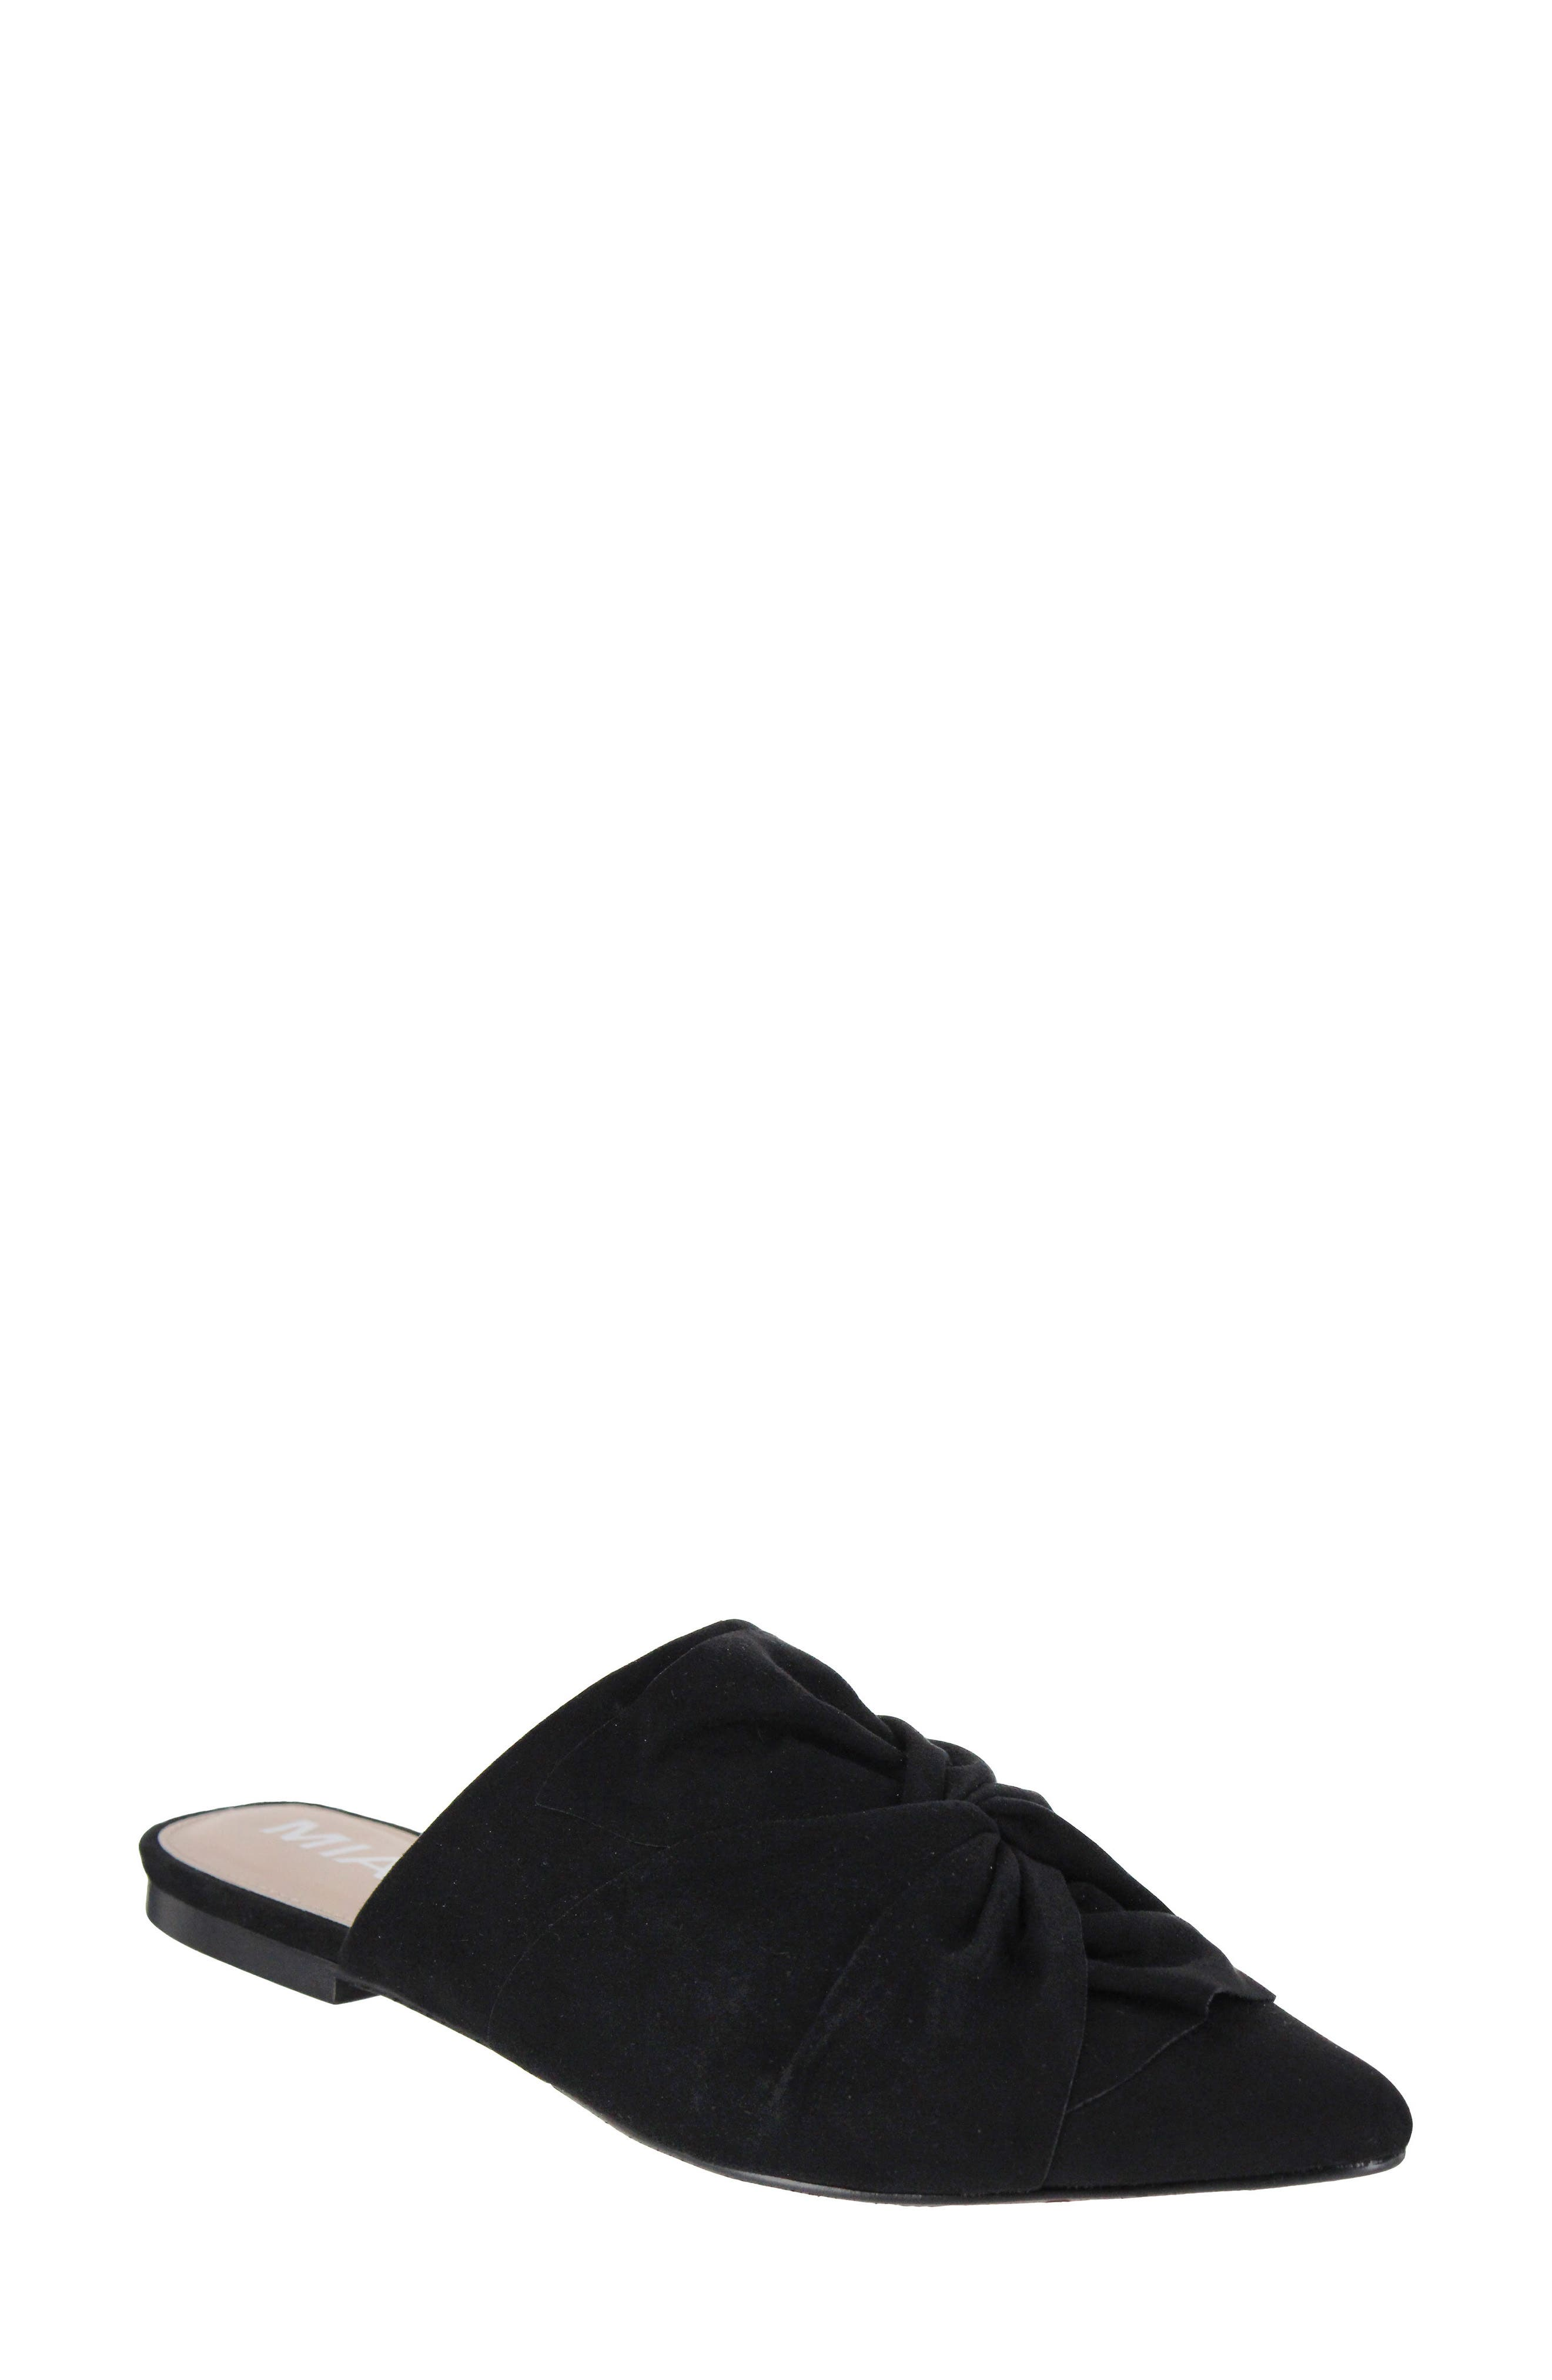 Cabaret Knotted Mule,                         Main,                         color,